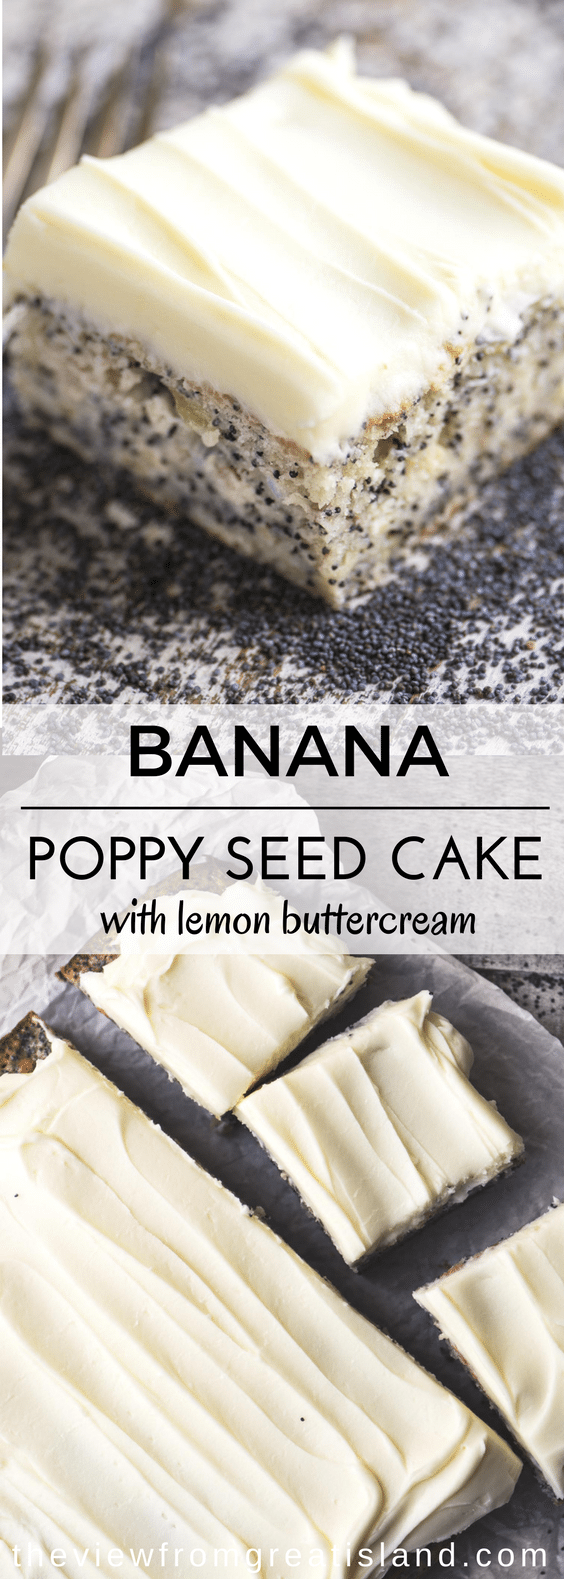 Banana Poppy Seed Cake with Lemon Buttercream #lemonbuttercream Banana Poppy Seed Cake with Lemon Buttercream ~ an easy snack cake made with bananas and poppy seeds, generoulsy topped with a lemon frosting ~ you can whip up this easy one bowl cake in no time. #cake #blondies #snackcake #bananacake #poppyseeds #poppyseedcake #lemonfrosting #lemoncake #coffeecake #dessert #easybananacake #baking #onebowlcake #lemonbuttercream Banana Poppy Seed Cake with Lemon Buttercream #lemonbuttercream Banana P #lemonbuttercream